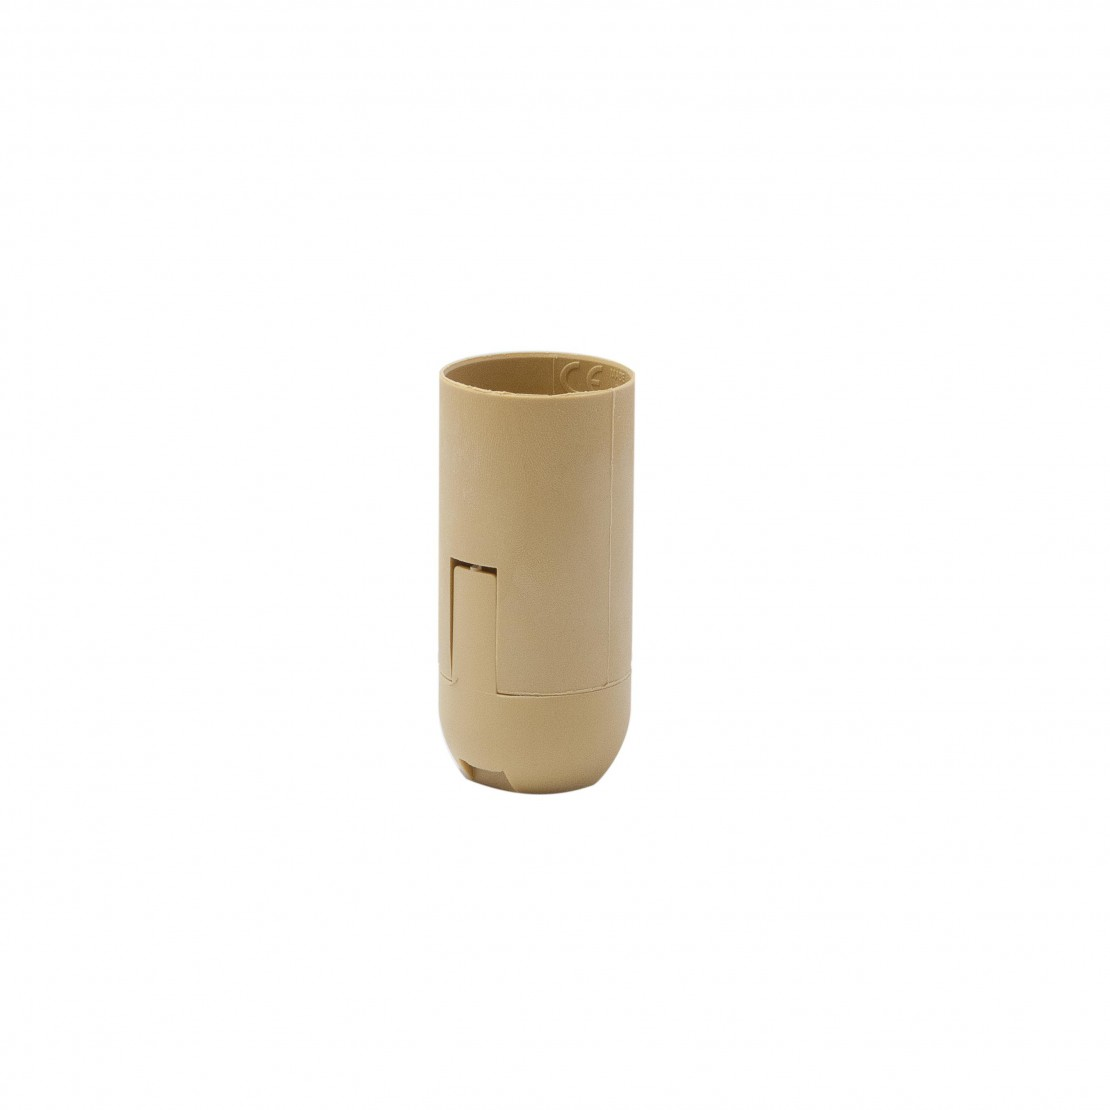 Smooth E14 quick-connect lamp holder, gold